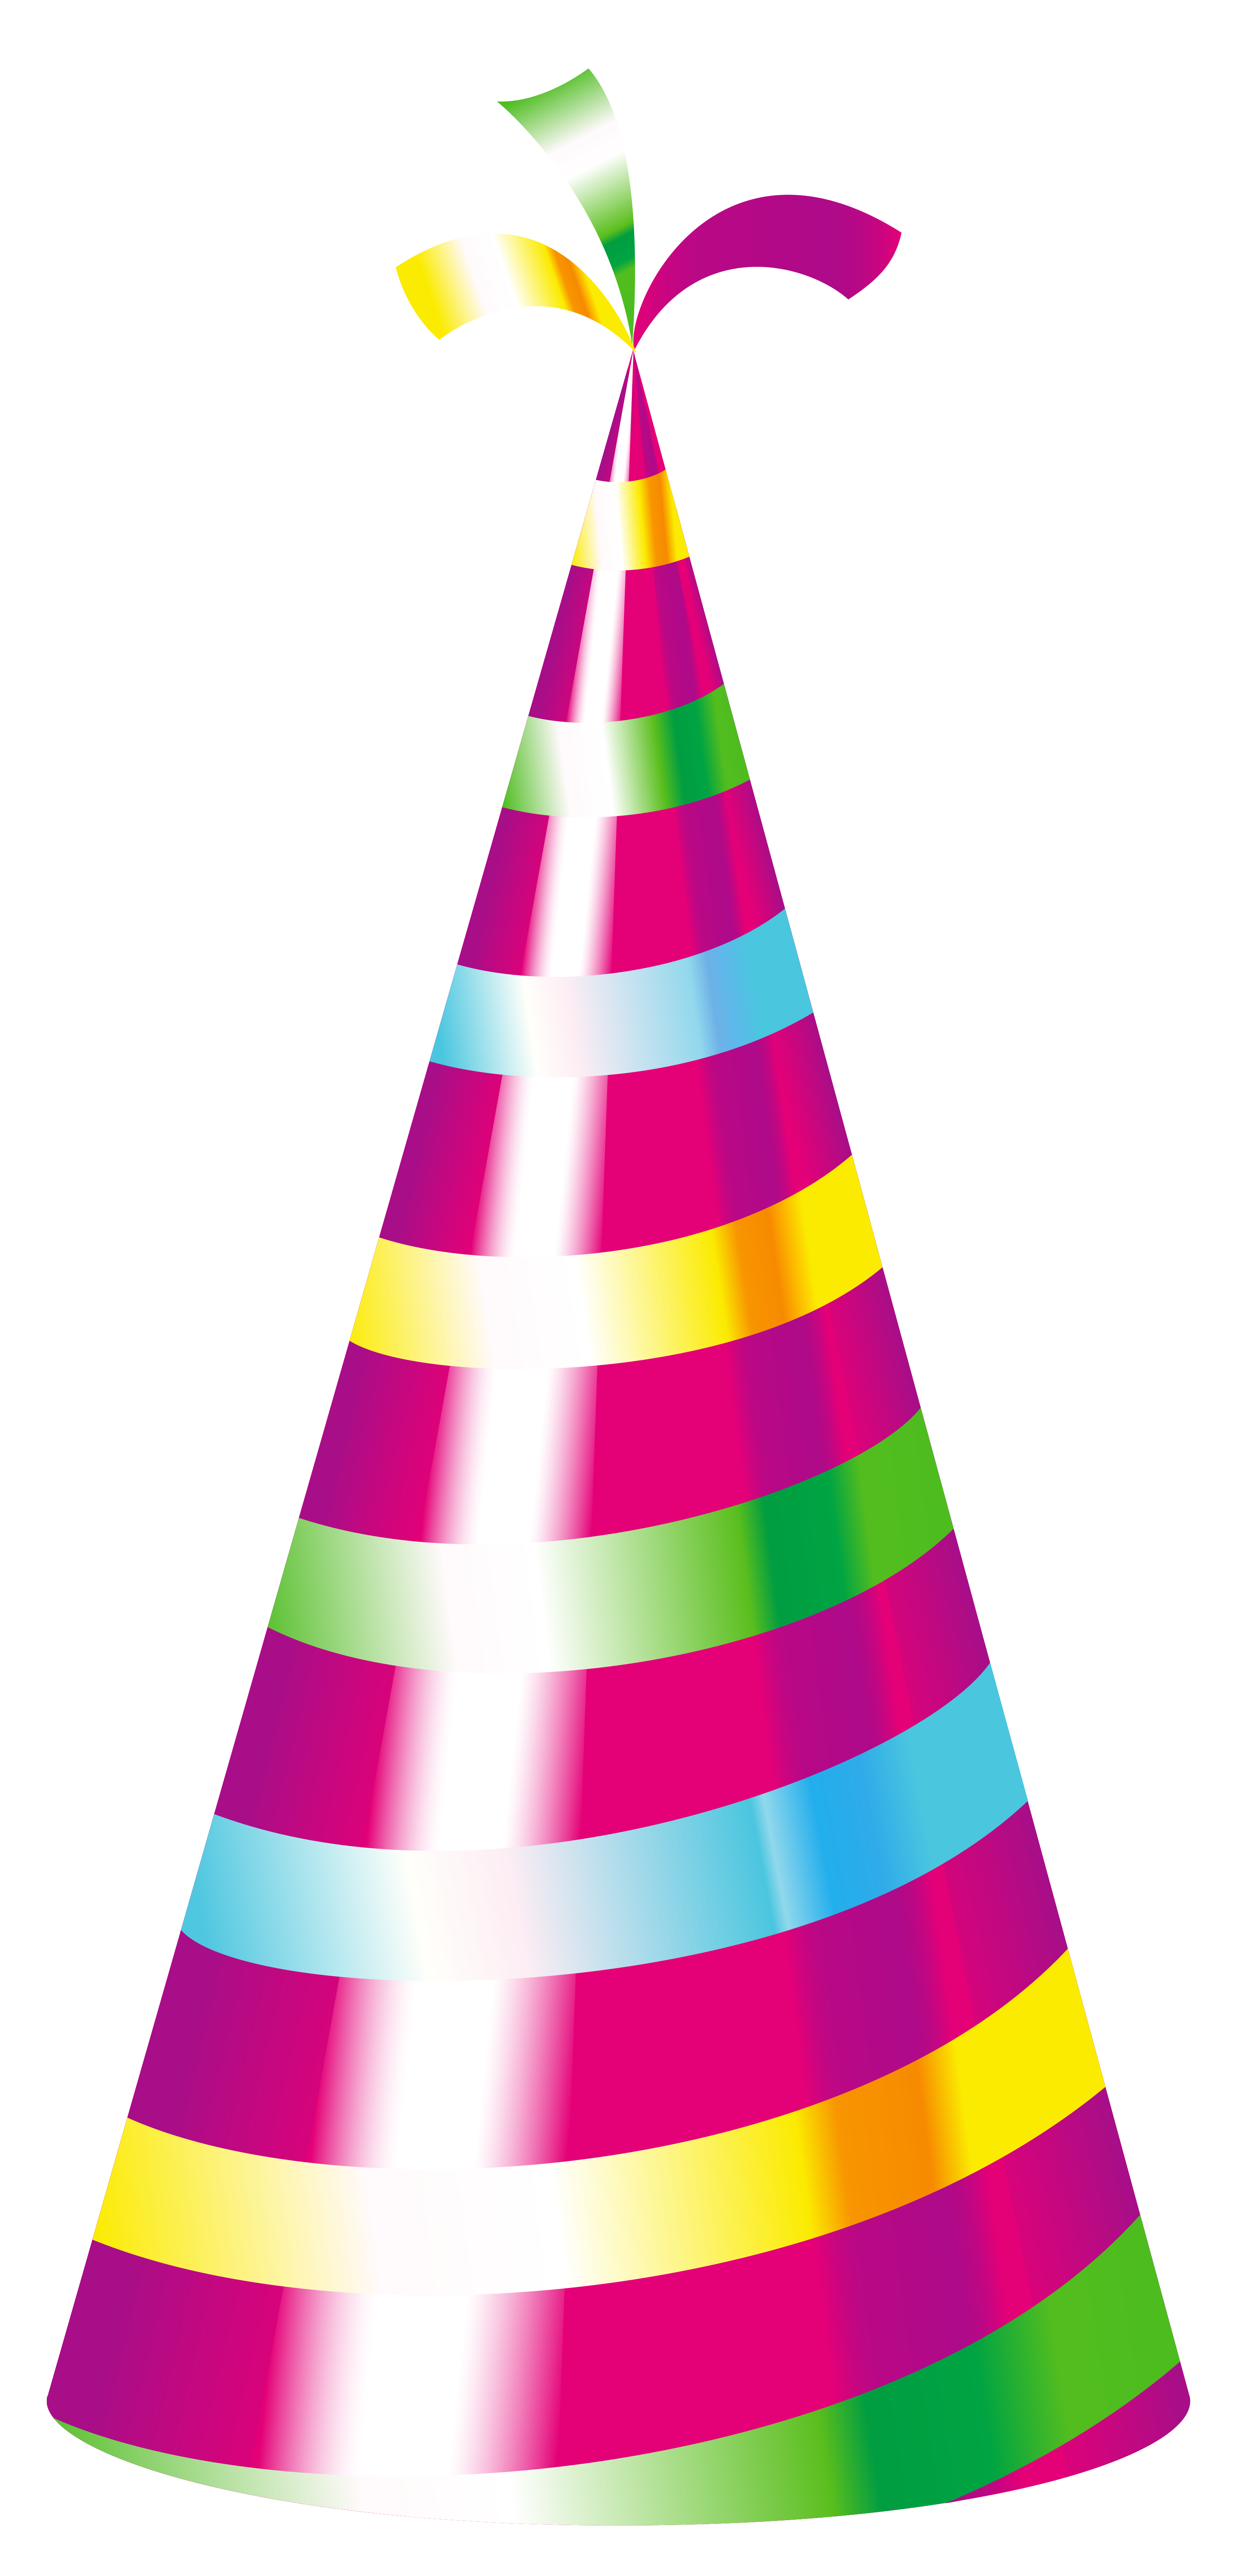 Party hats png. Download birthday hat free